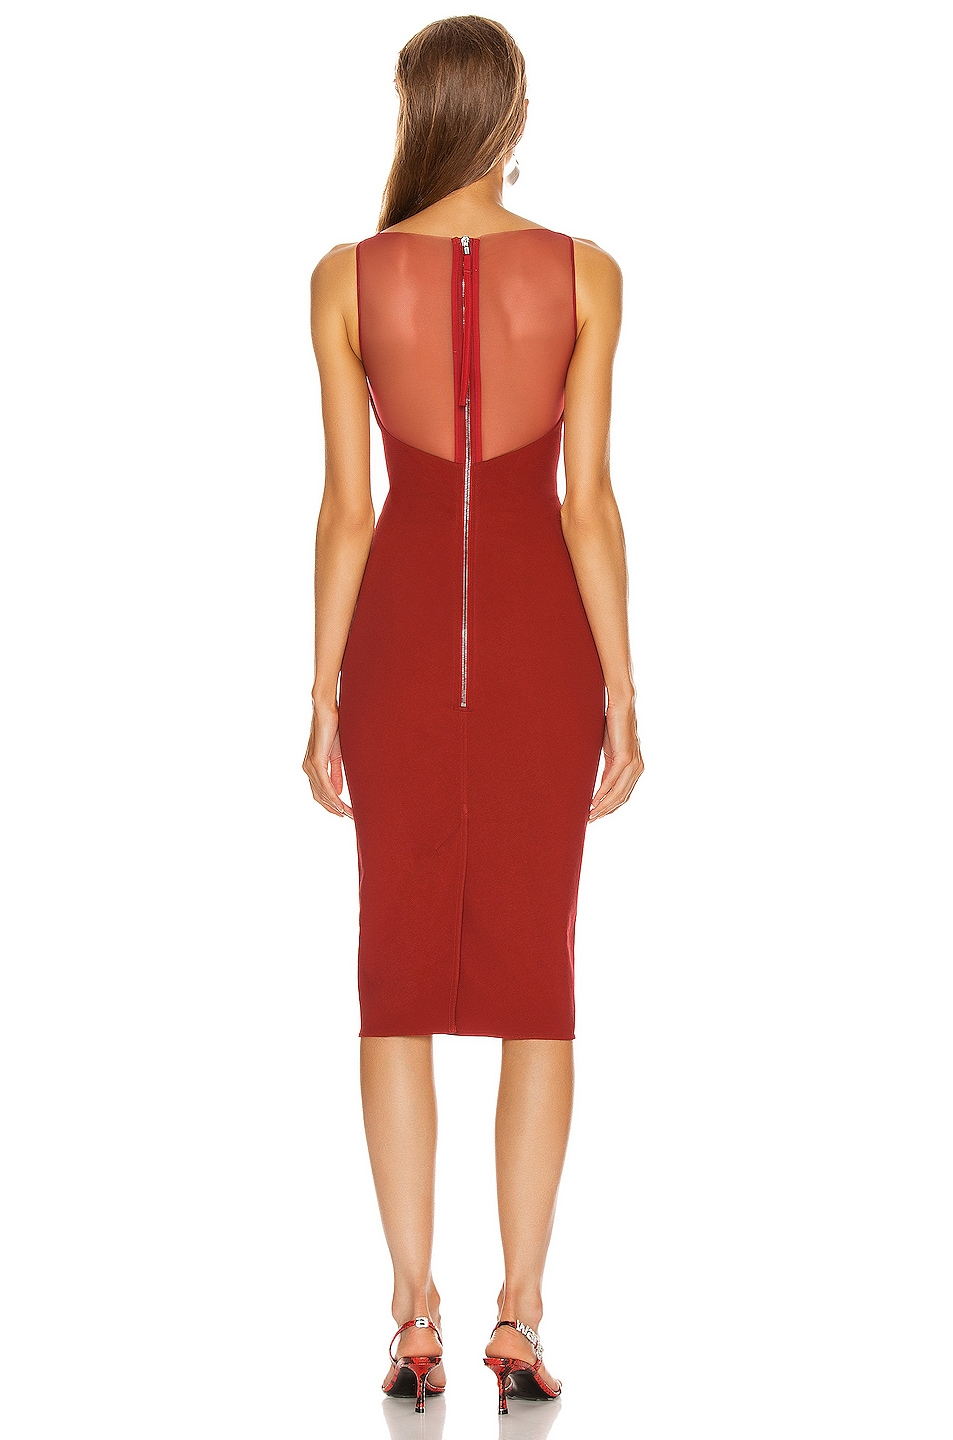 Image 3 of Rick Owens Prong Dress in Cardinal Red